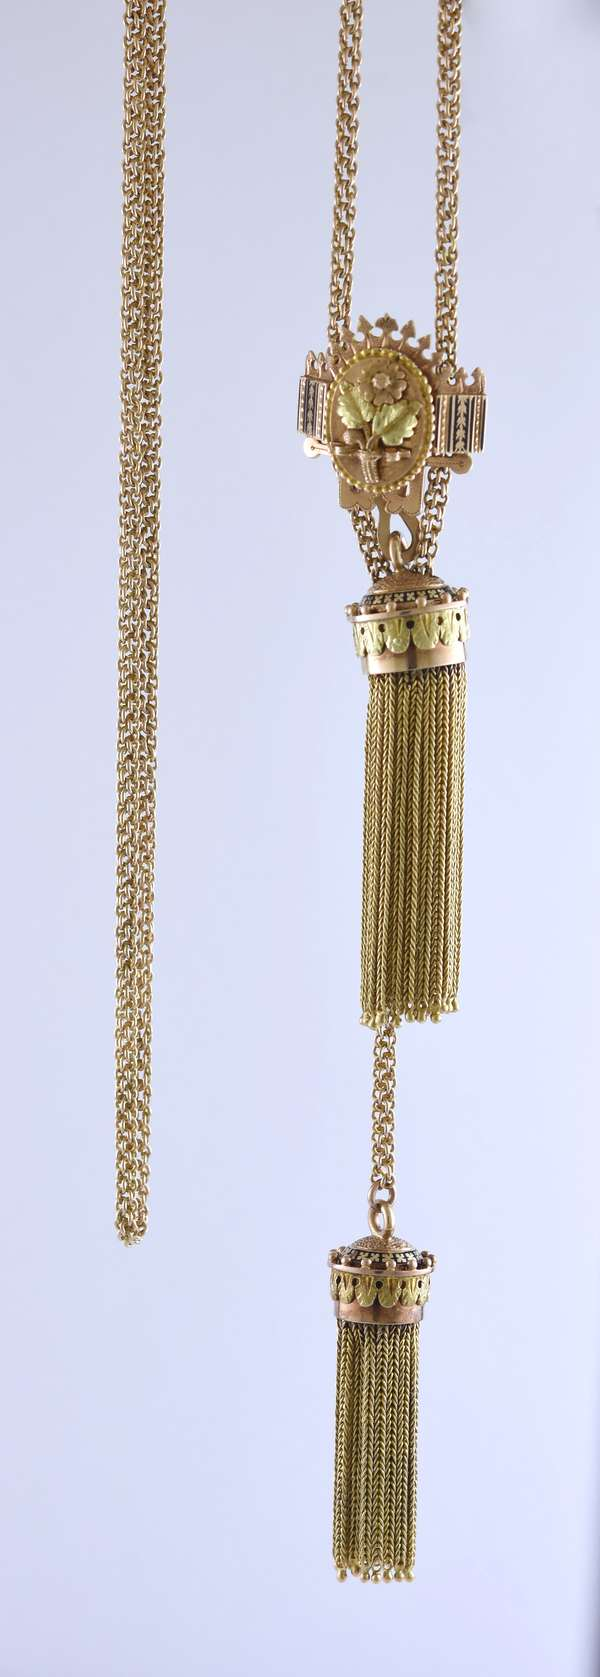 Tested 14k tri-rose, yellow and green color gold slide chain with tassels, flower motif and black enamel accents, 42